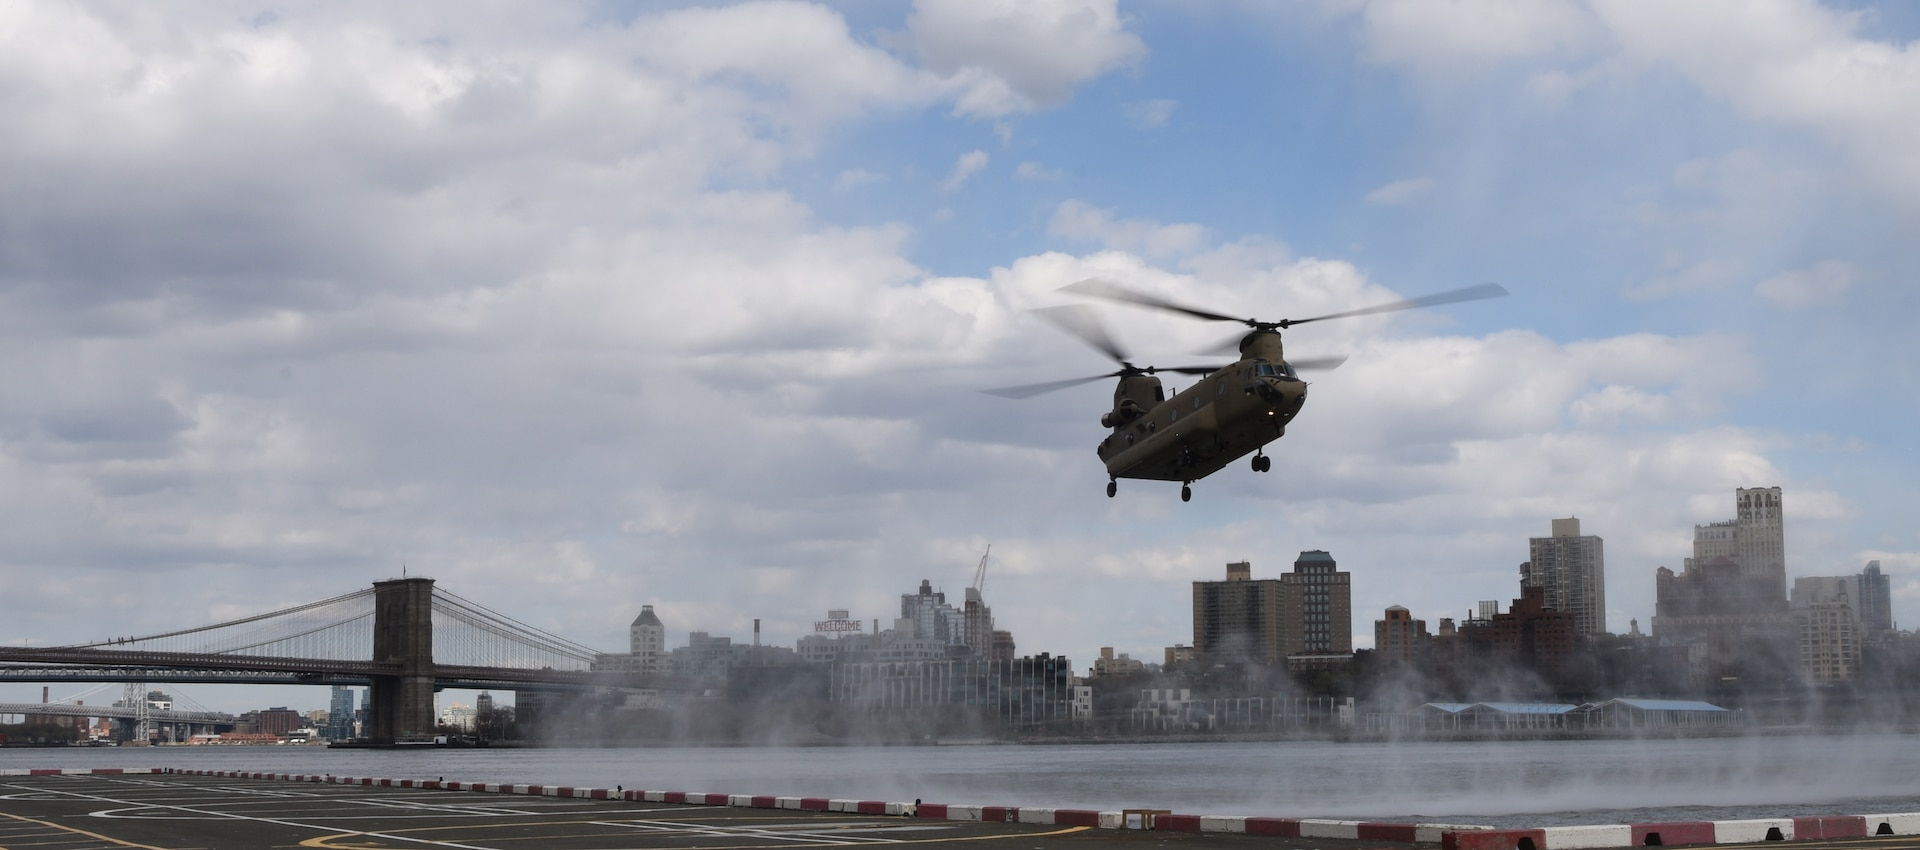 A CH-47 Chinook helicopter, assigned to the New York Army National Guard's Company B, 3rd Battalion, 126th Aviation, approaches a helipad in New York City, April 16, 2020. New York National Guard members are supporting the multi-agency response to COVID-19.